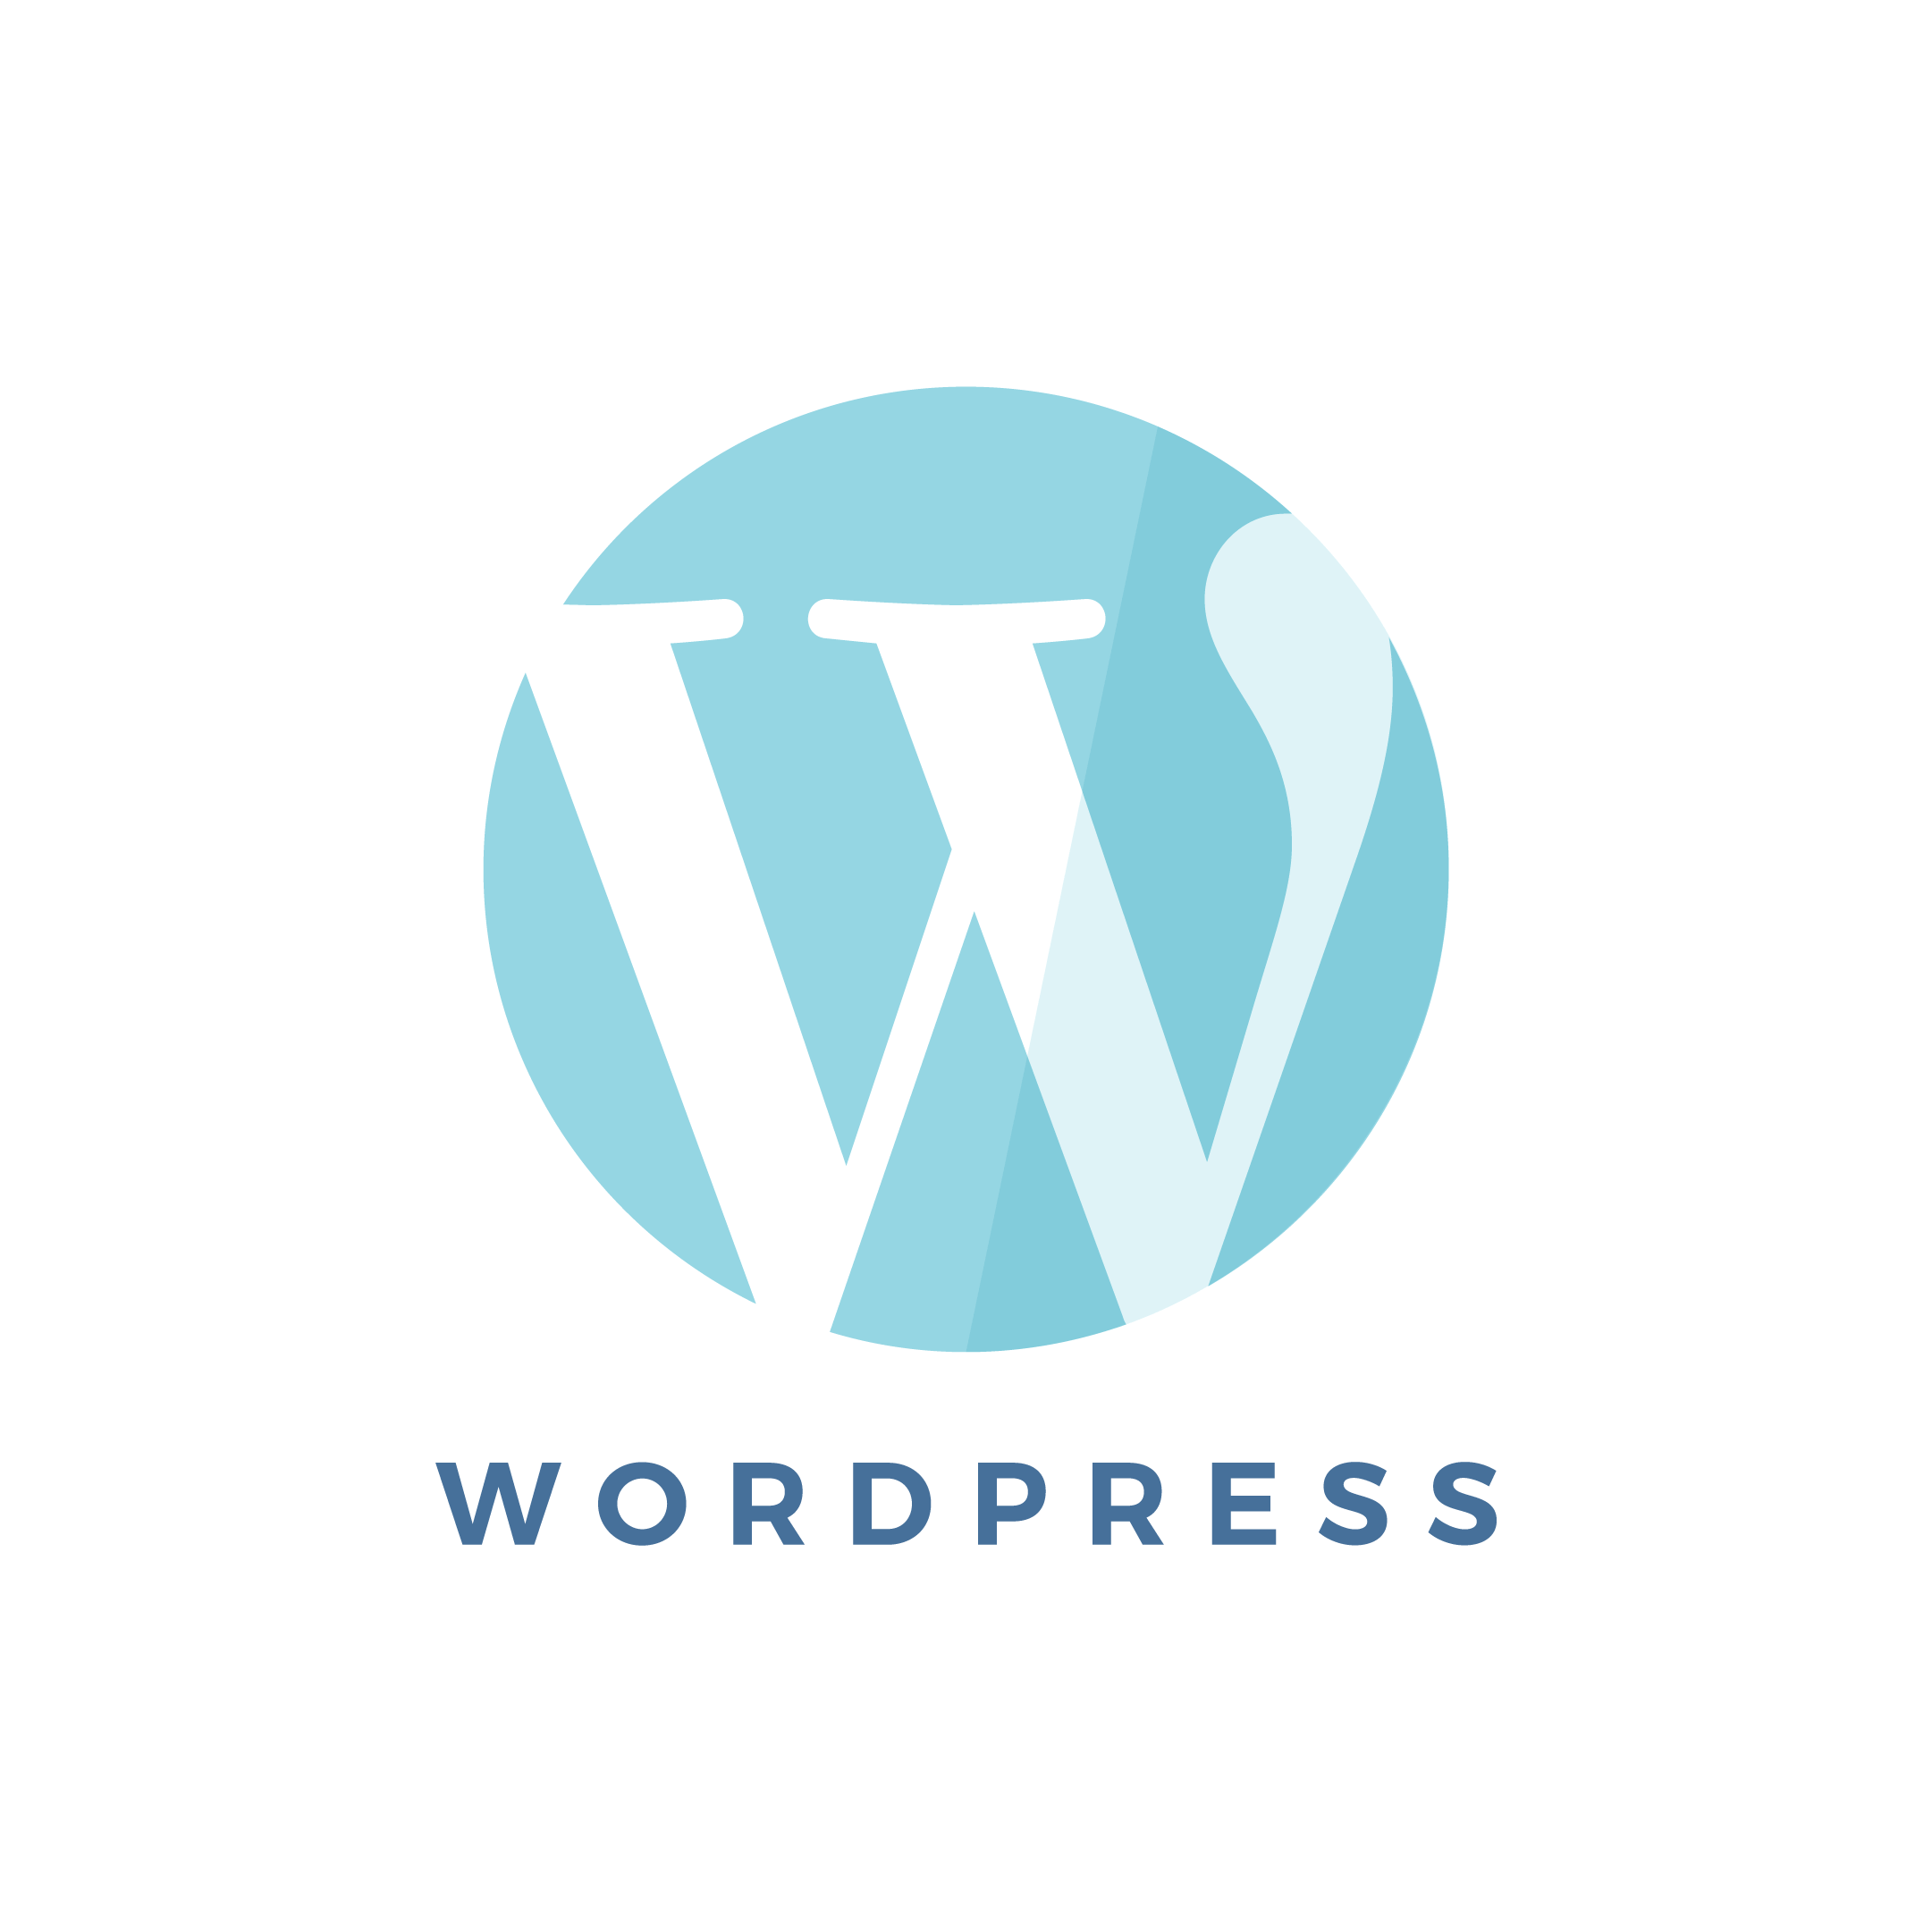 Blue vector illustration representing the WordPress website design in flat design style